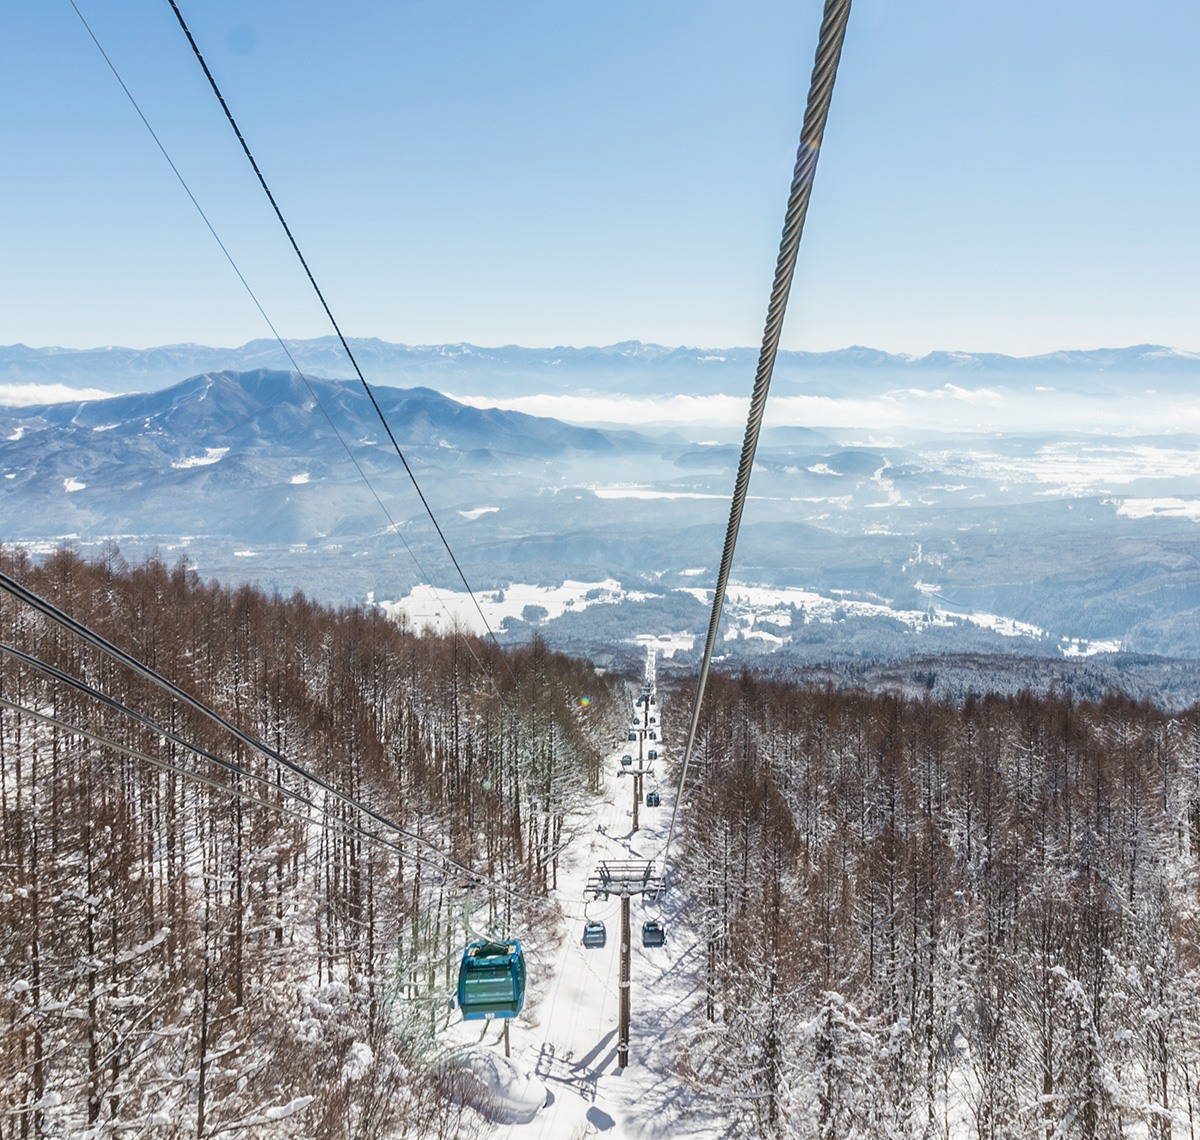 Res-LT-Prices-1200wx1140h The Resort & Lift Tickets